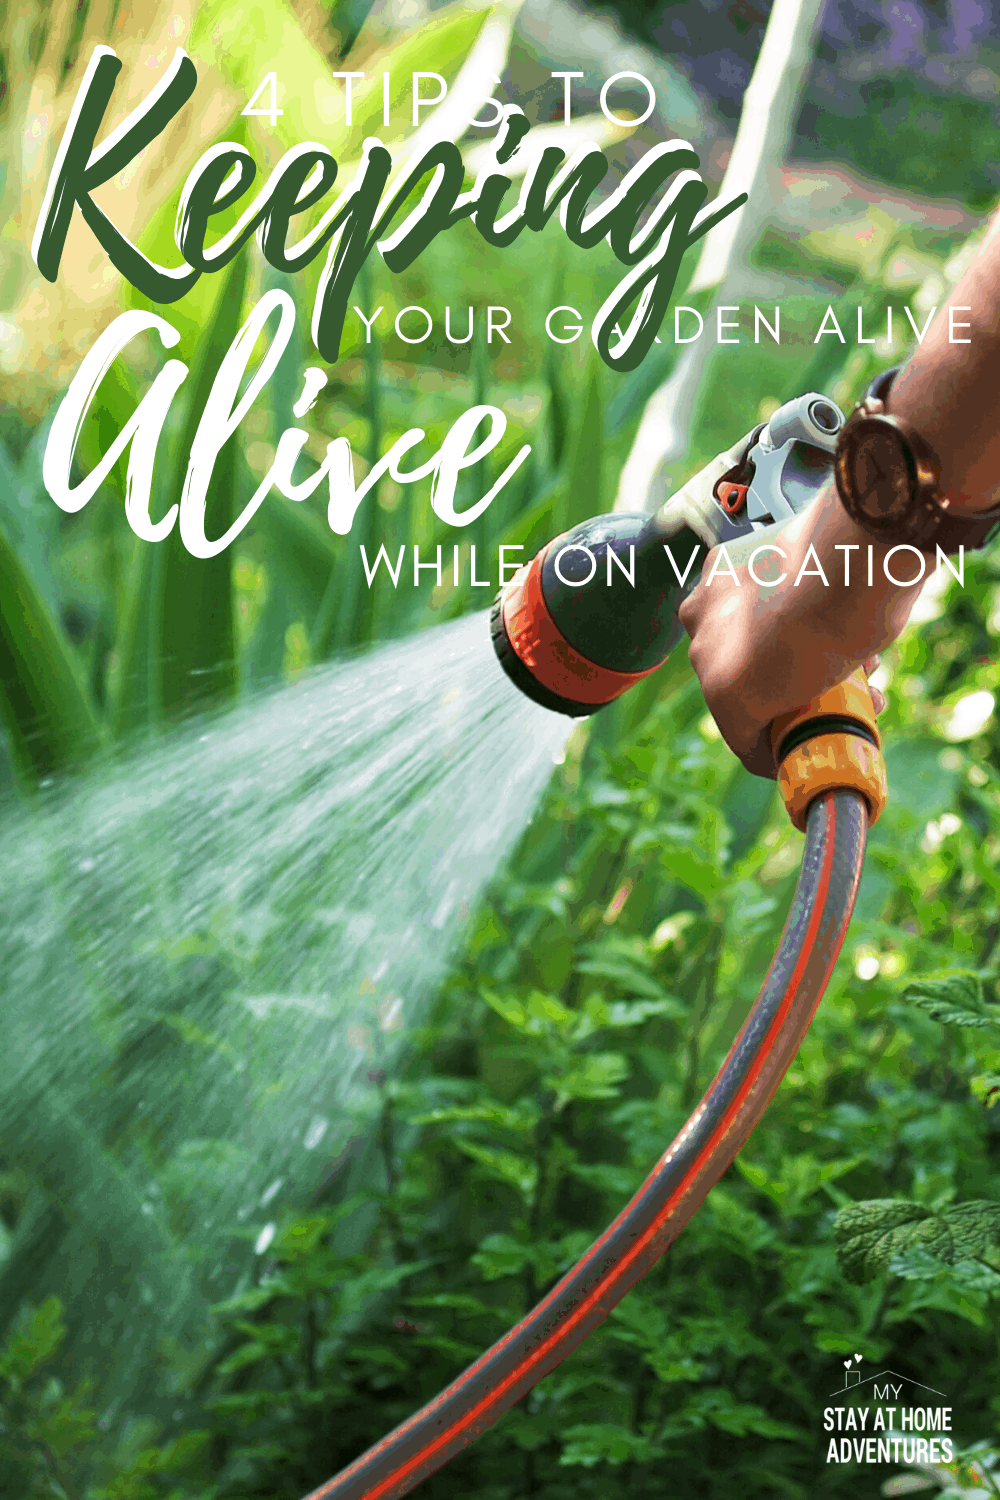 Are you worried about your garden this summer season? Learn four tips to keeping your garden alive while on vacation you might be surprised to know. #gardening #homegarden #gardeningtips via @mystayathome